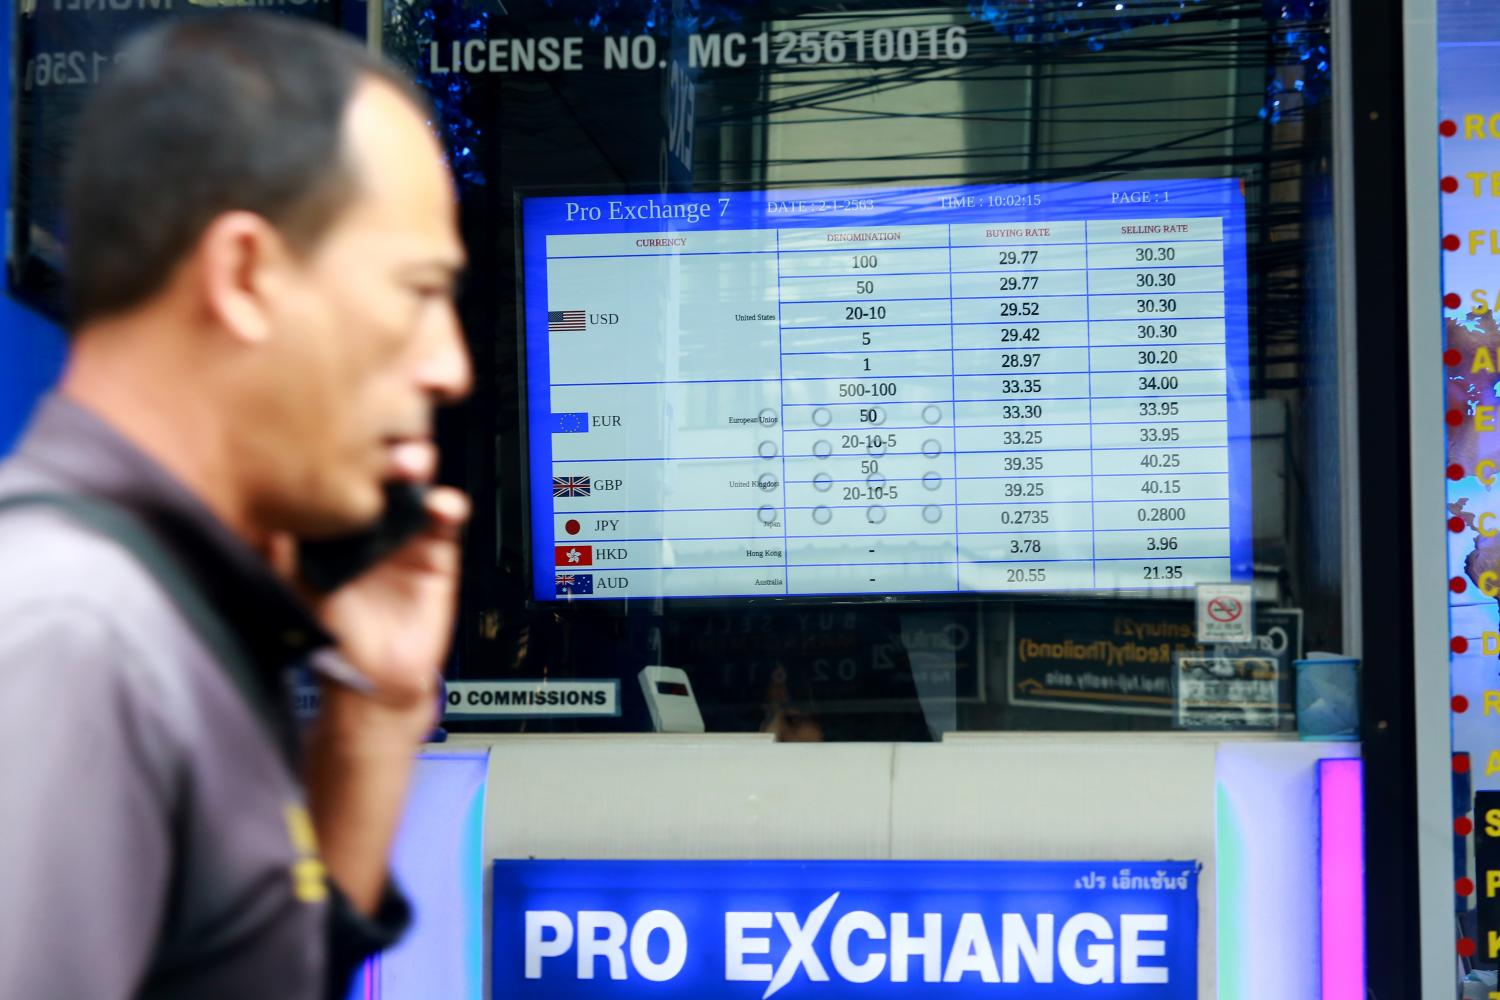 A man walks past a currency exchange booth in Bangkok. The Bank of Thailand has recently intervened in the foreign exchange market to try to weaken the baht. (Photo by Somchai Poomlard)